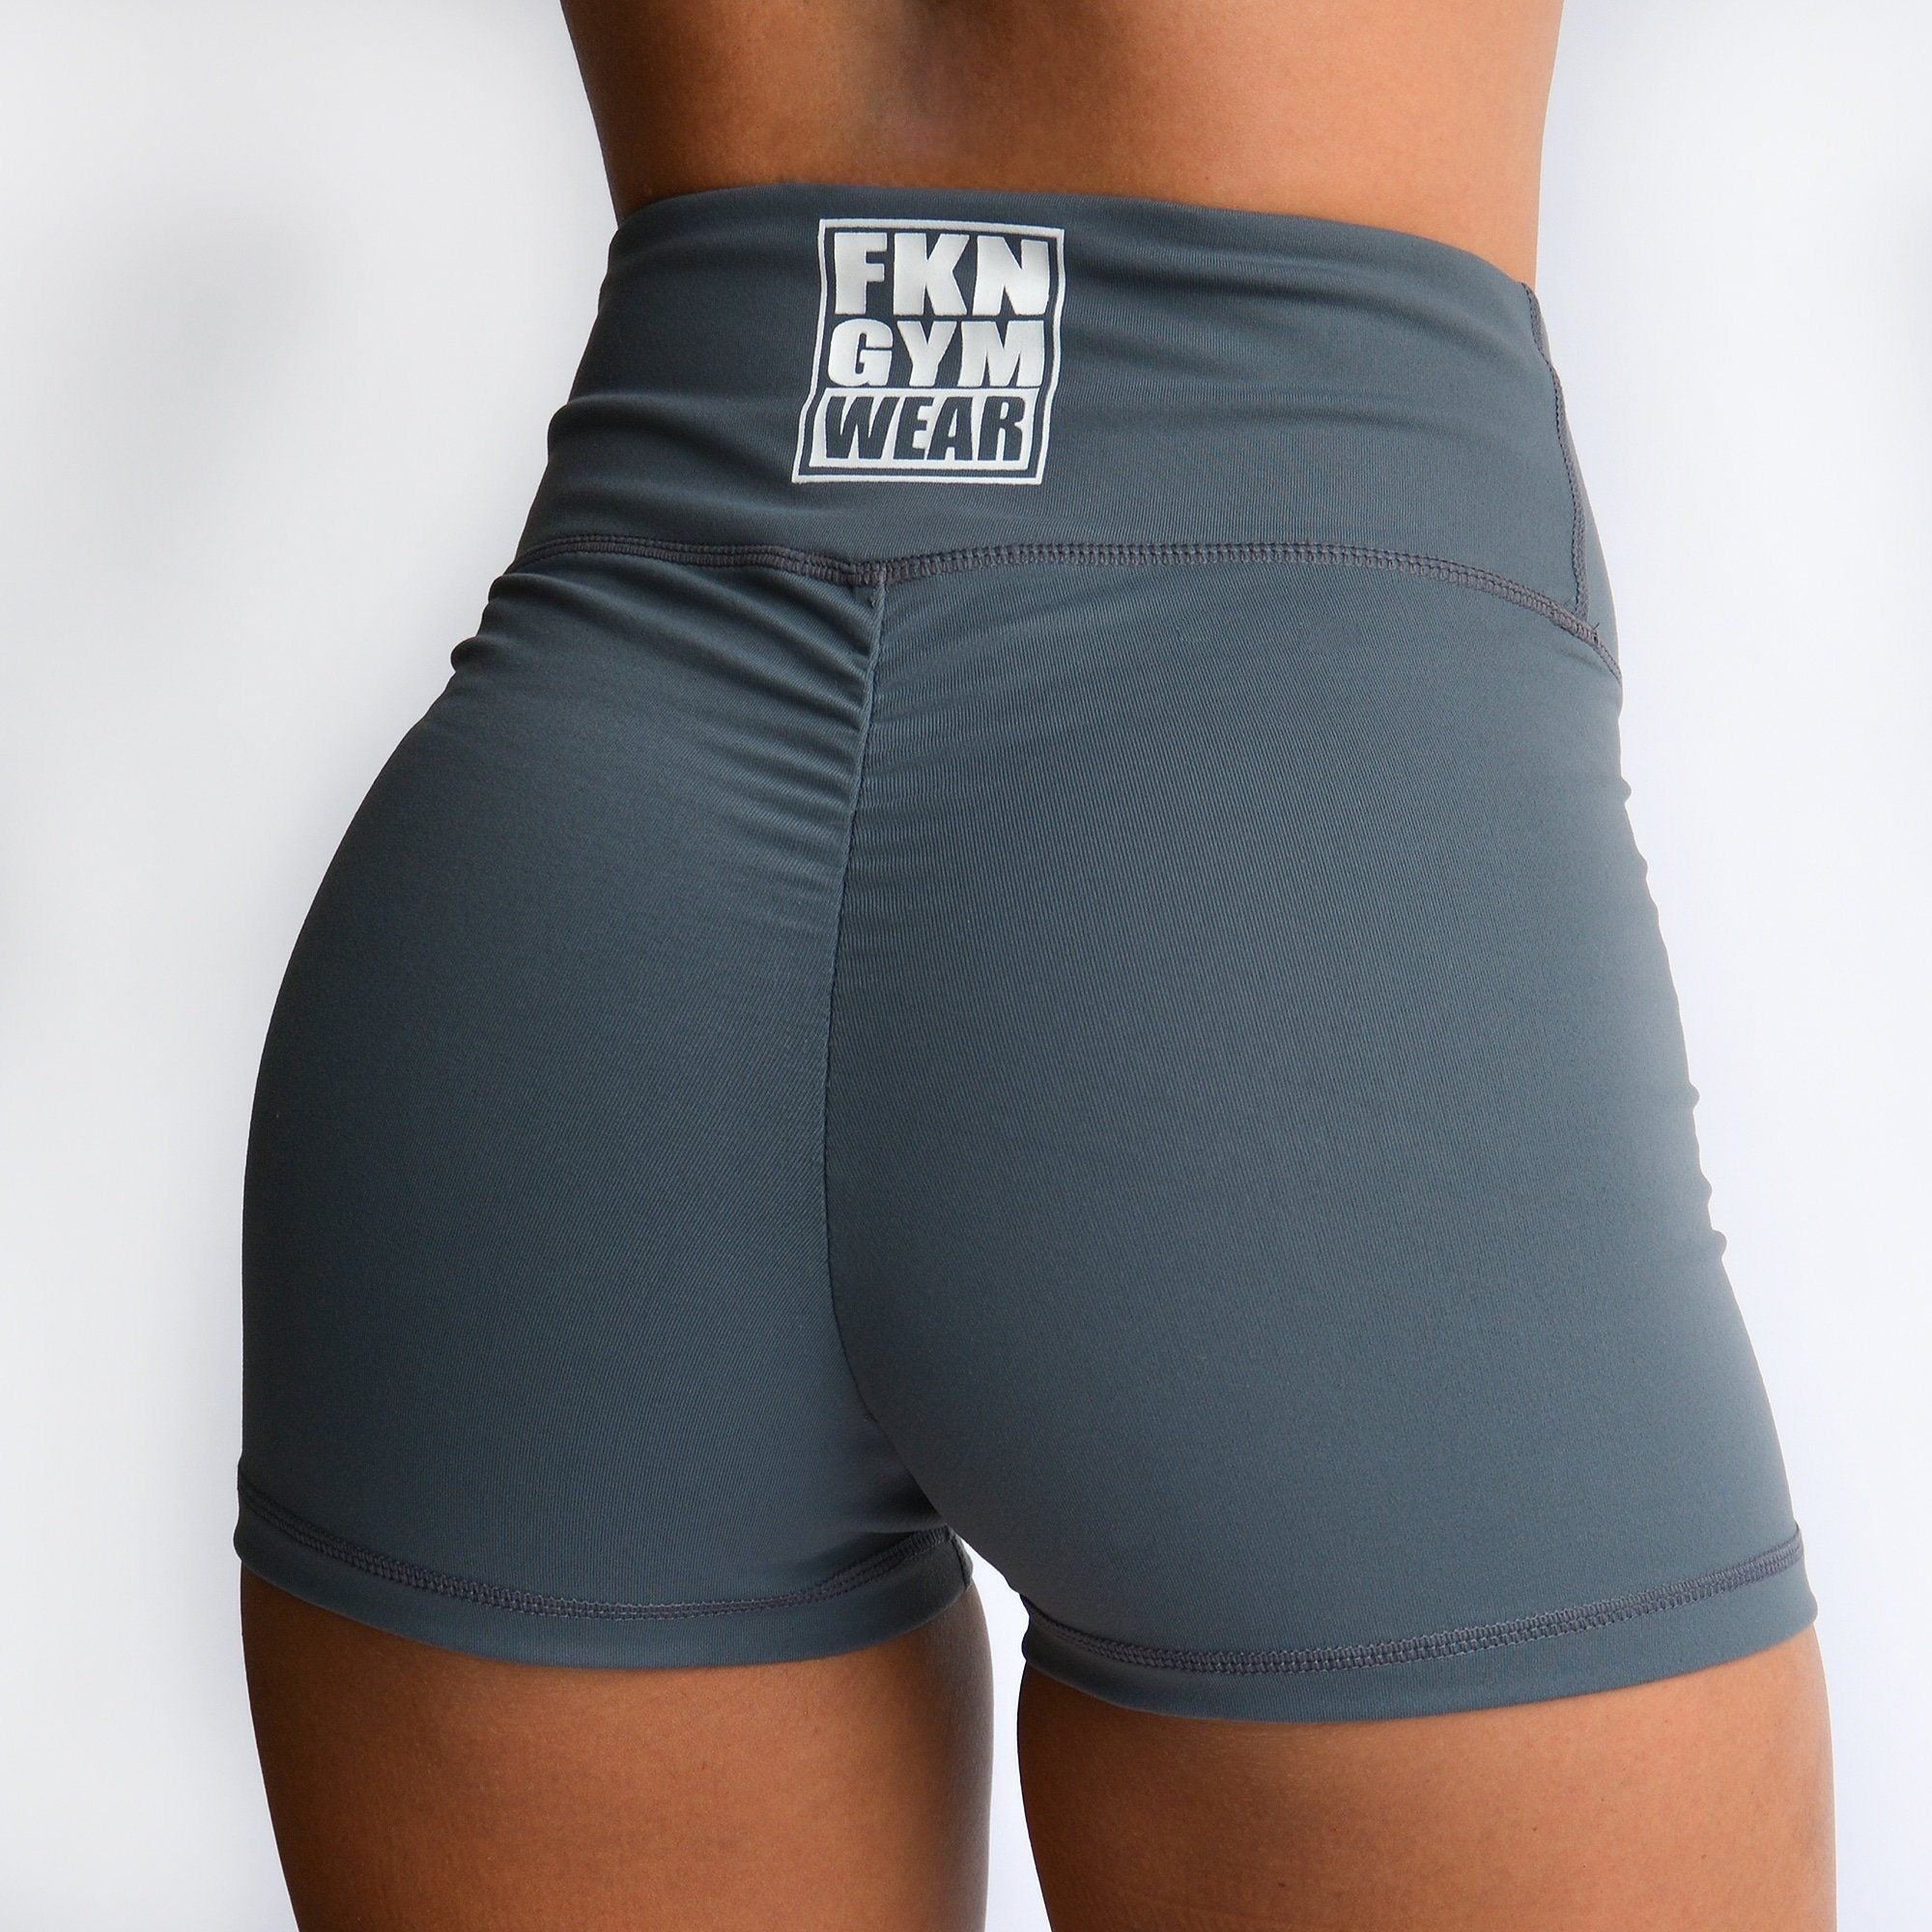 FKN Gym Wear High Waist Scrunch Shorts - Grey